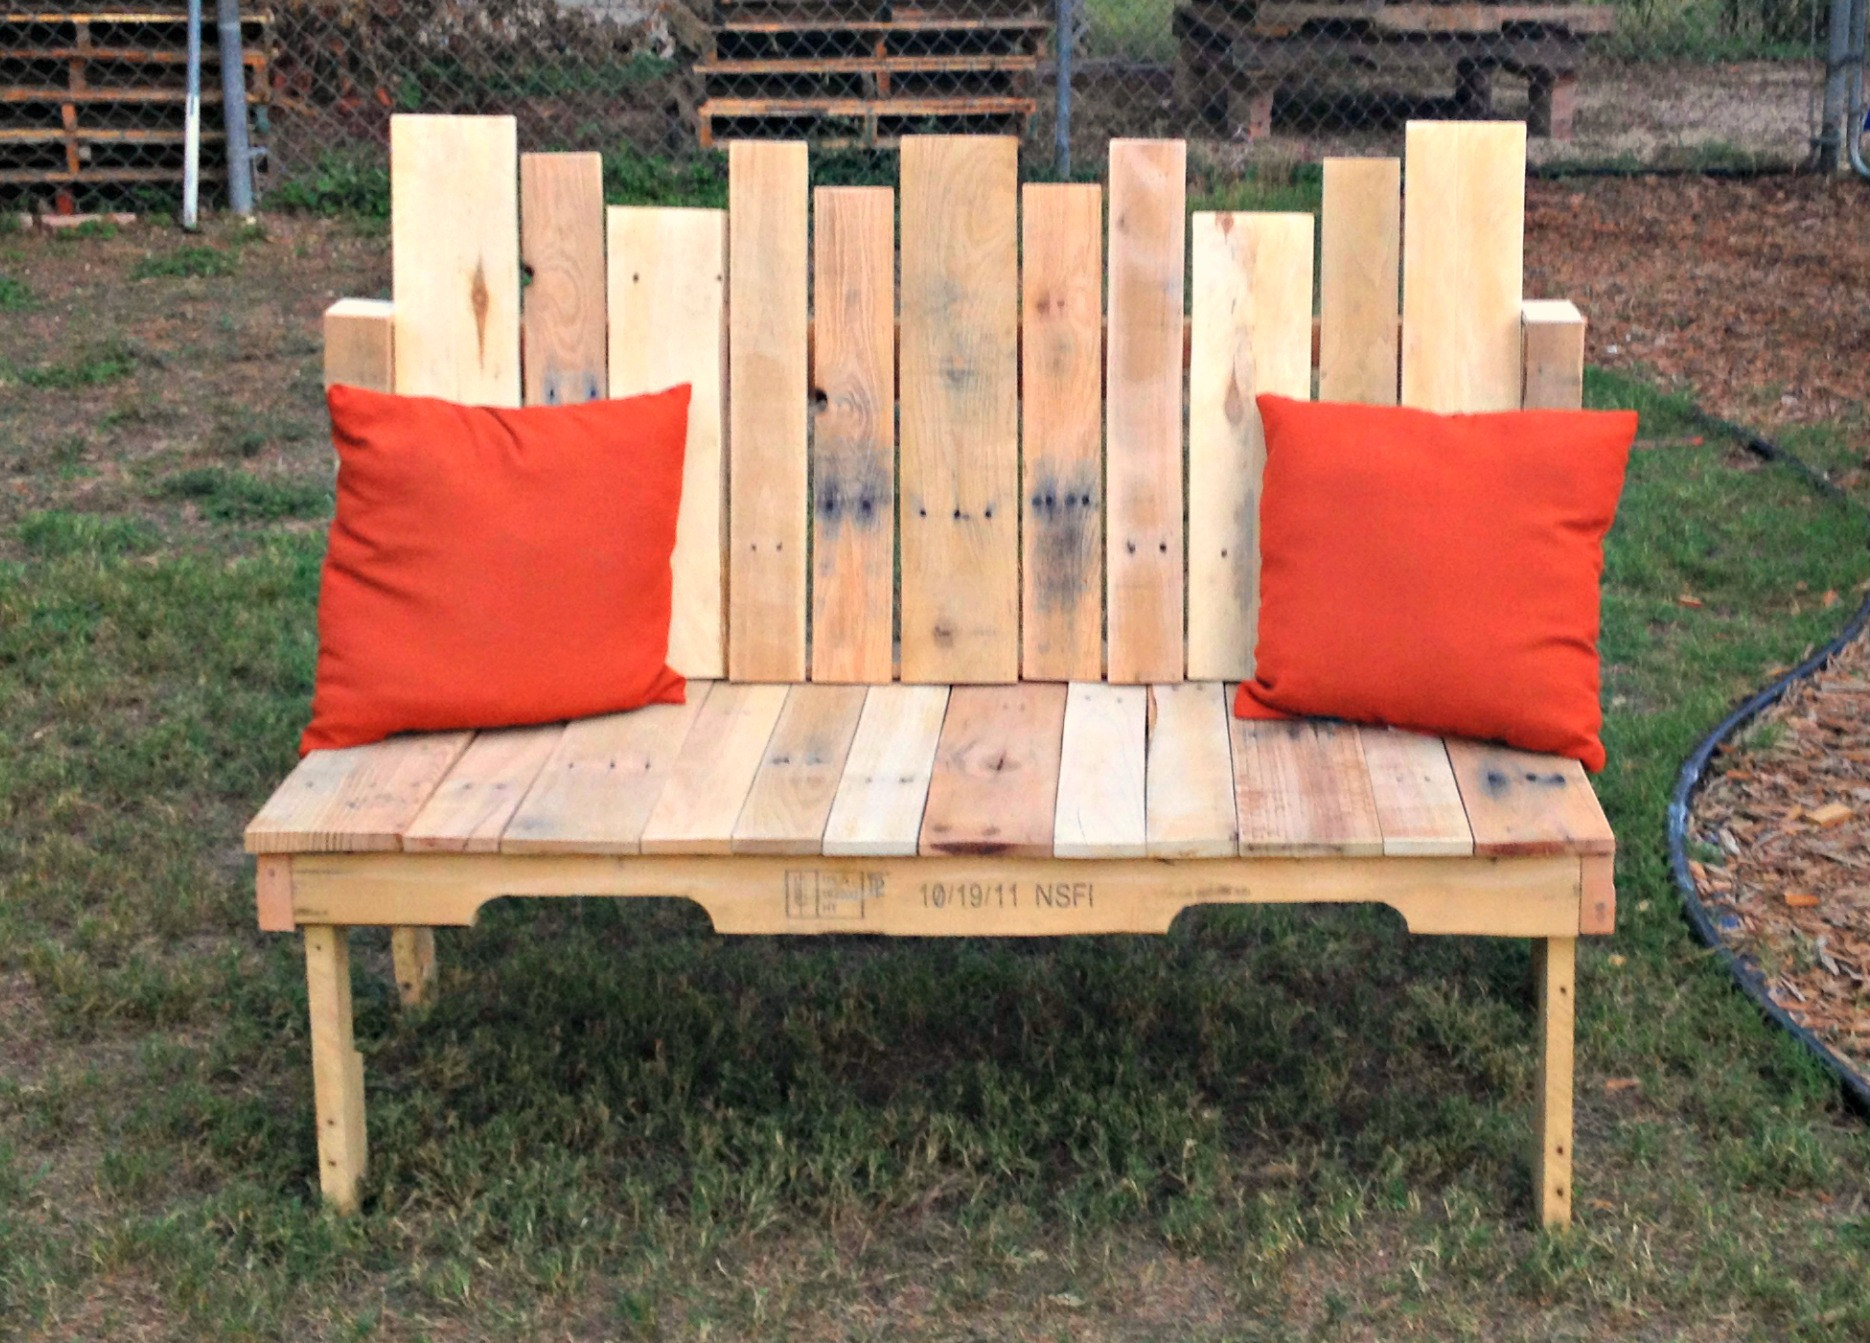 Houten Tuinbank Maken How-to: Pallet Wood Bench - Upcycled Ugly